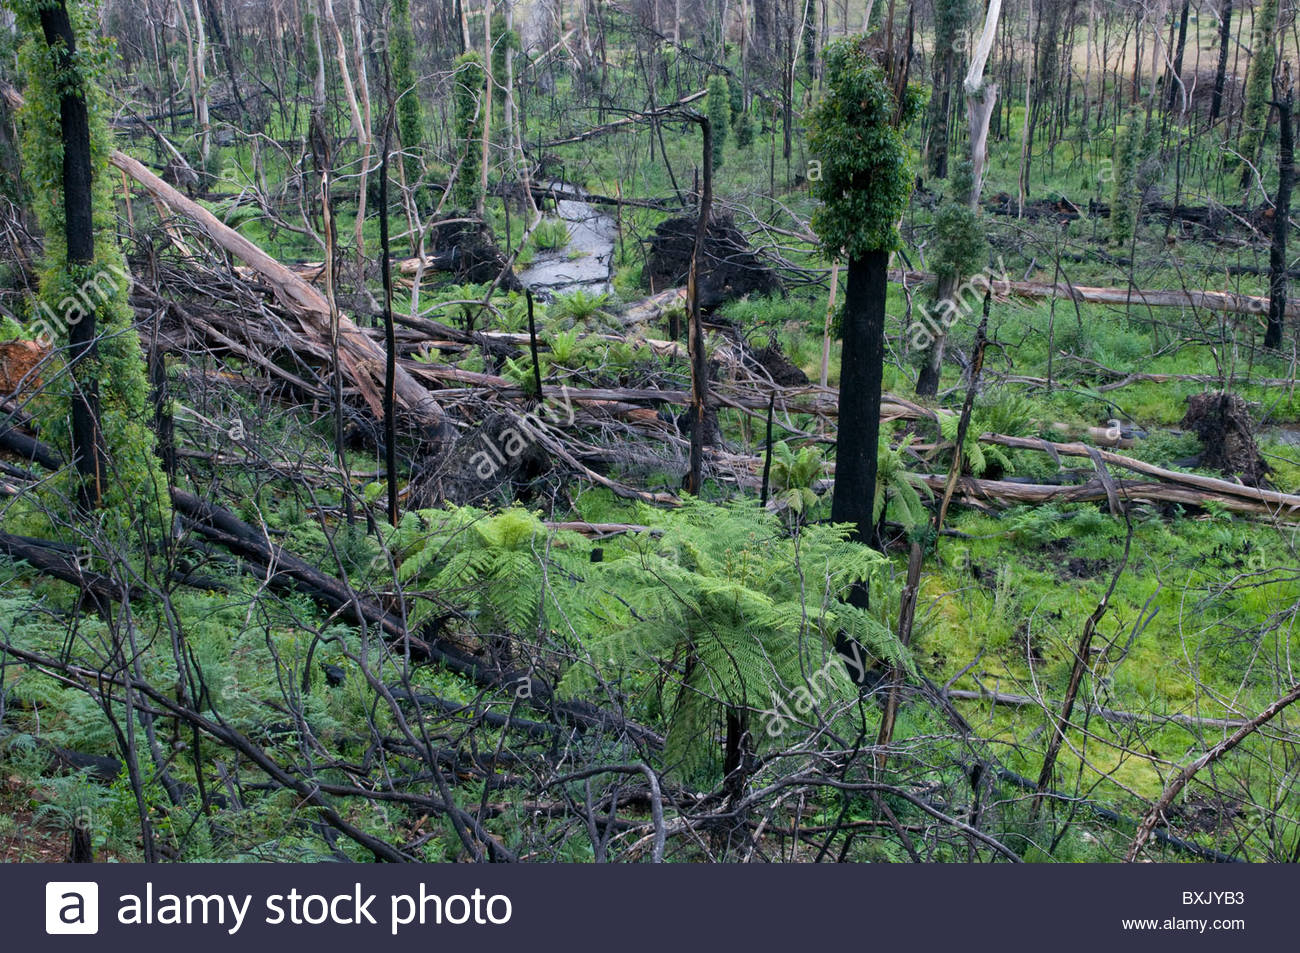 fire-damaged-trees-and-bush-showing-regrowth-a-year-after-a-bushfire-BXJYB3.